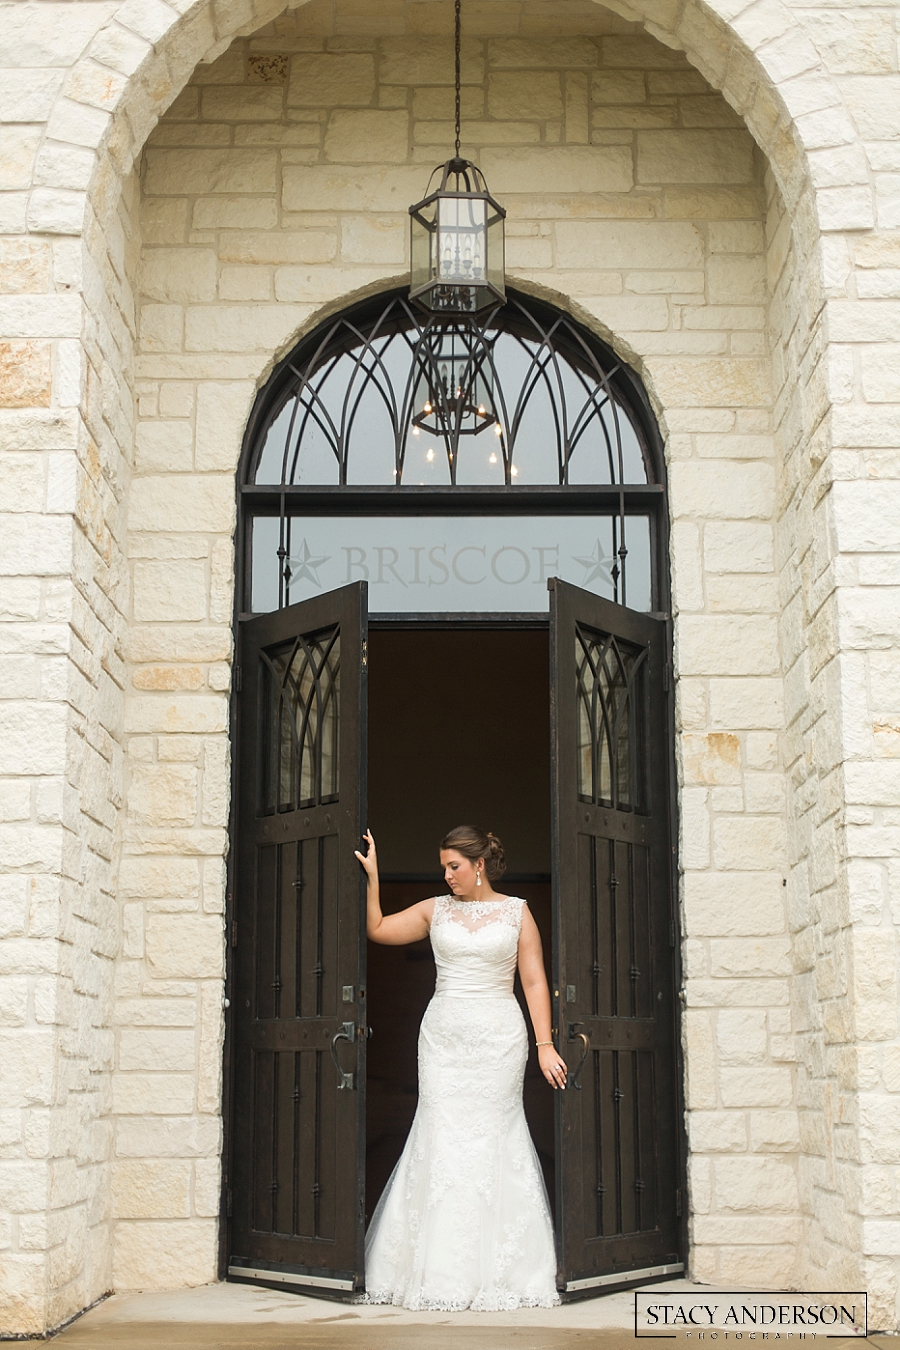 Stacy Anderson Photography Briscoe Manor Wedding Photographer_1425